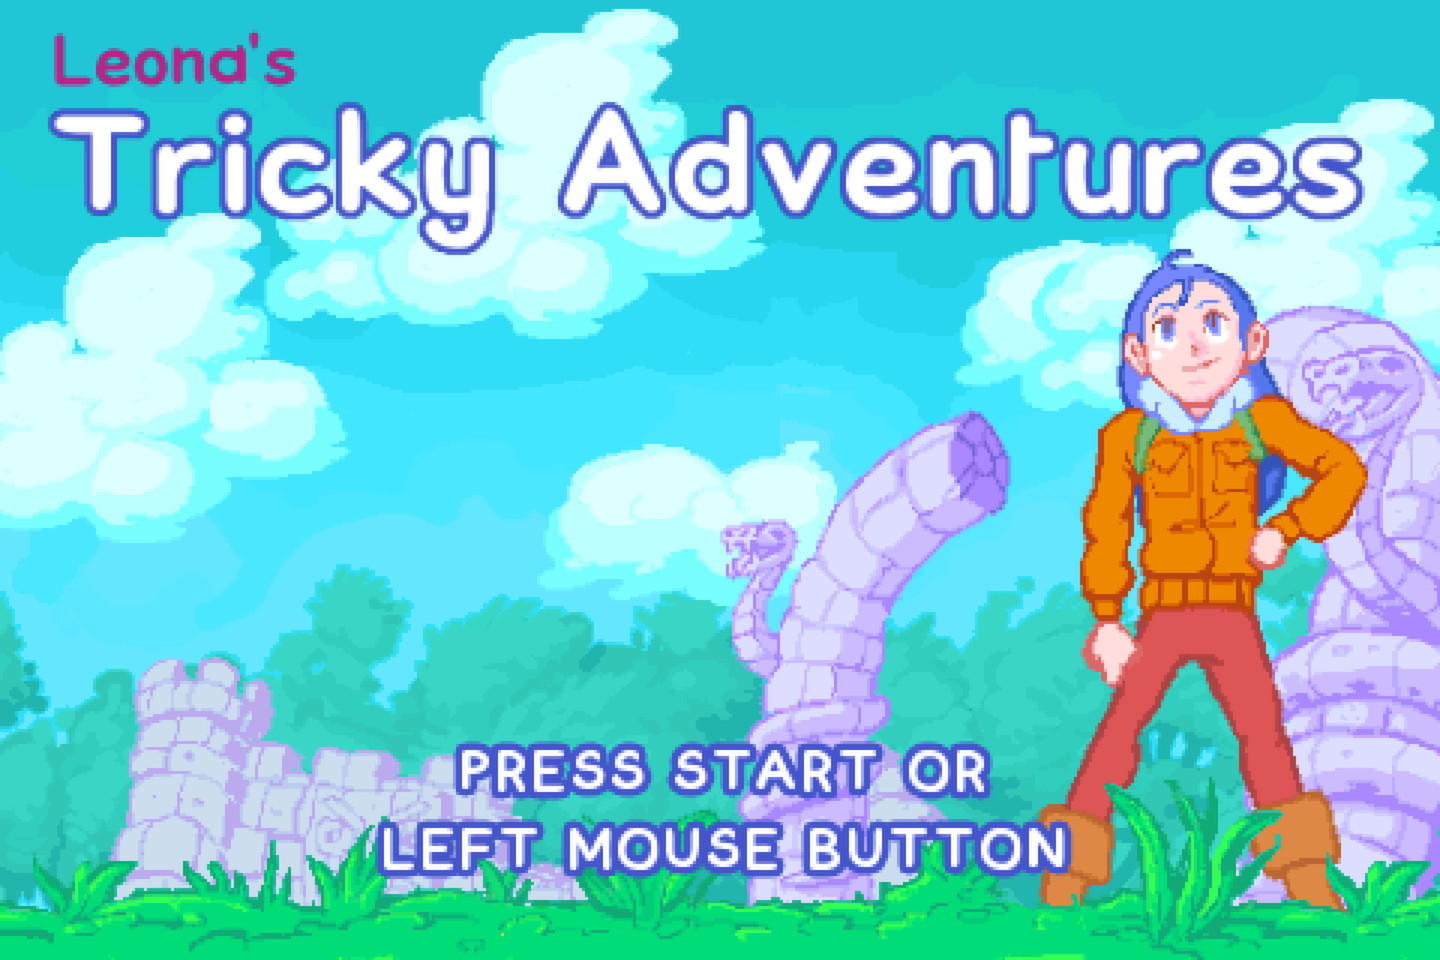 Photo of Leona's Tricky Adventures now available to purchase on Dreamcast